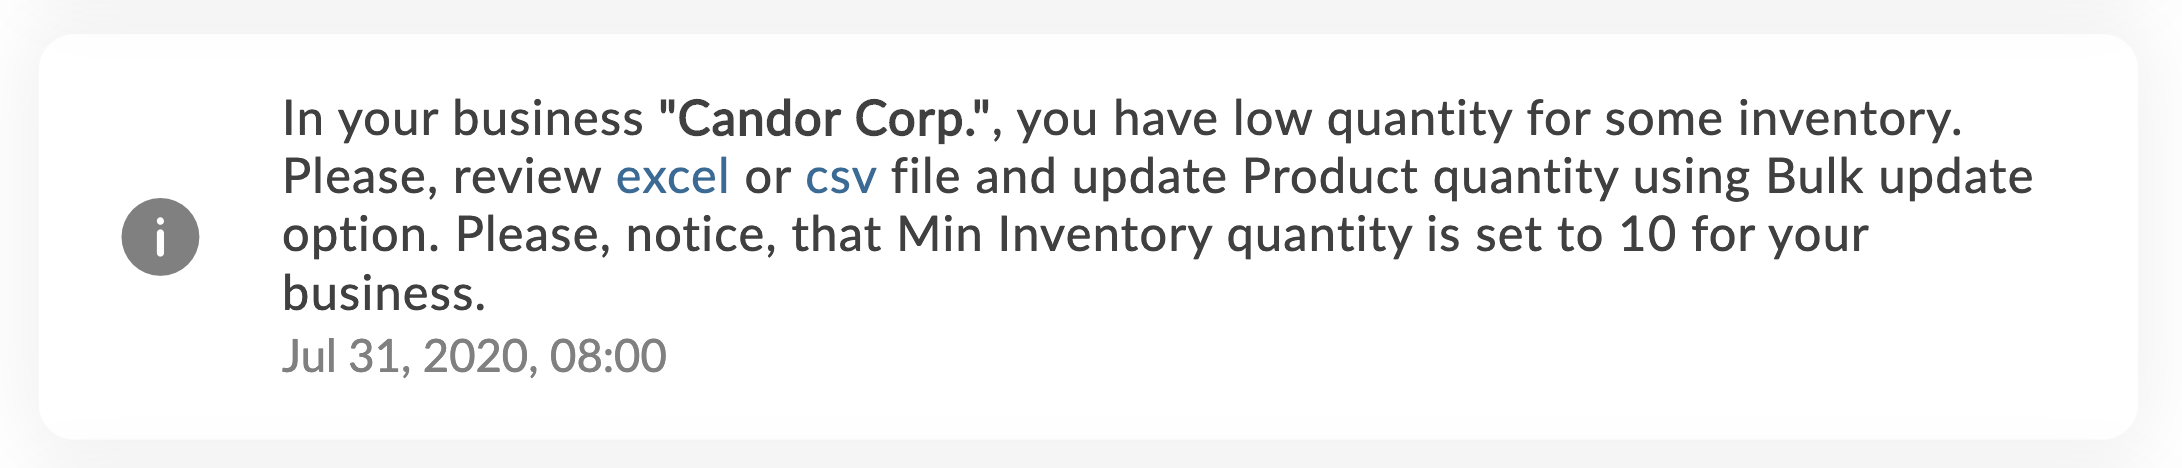 low inventory notification